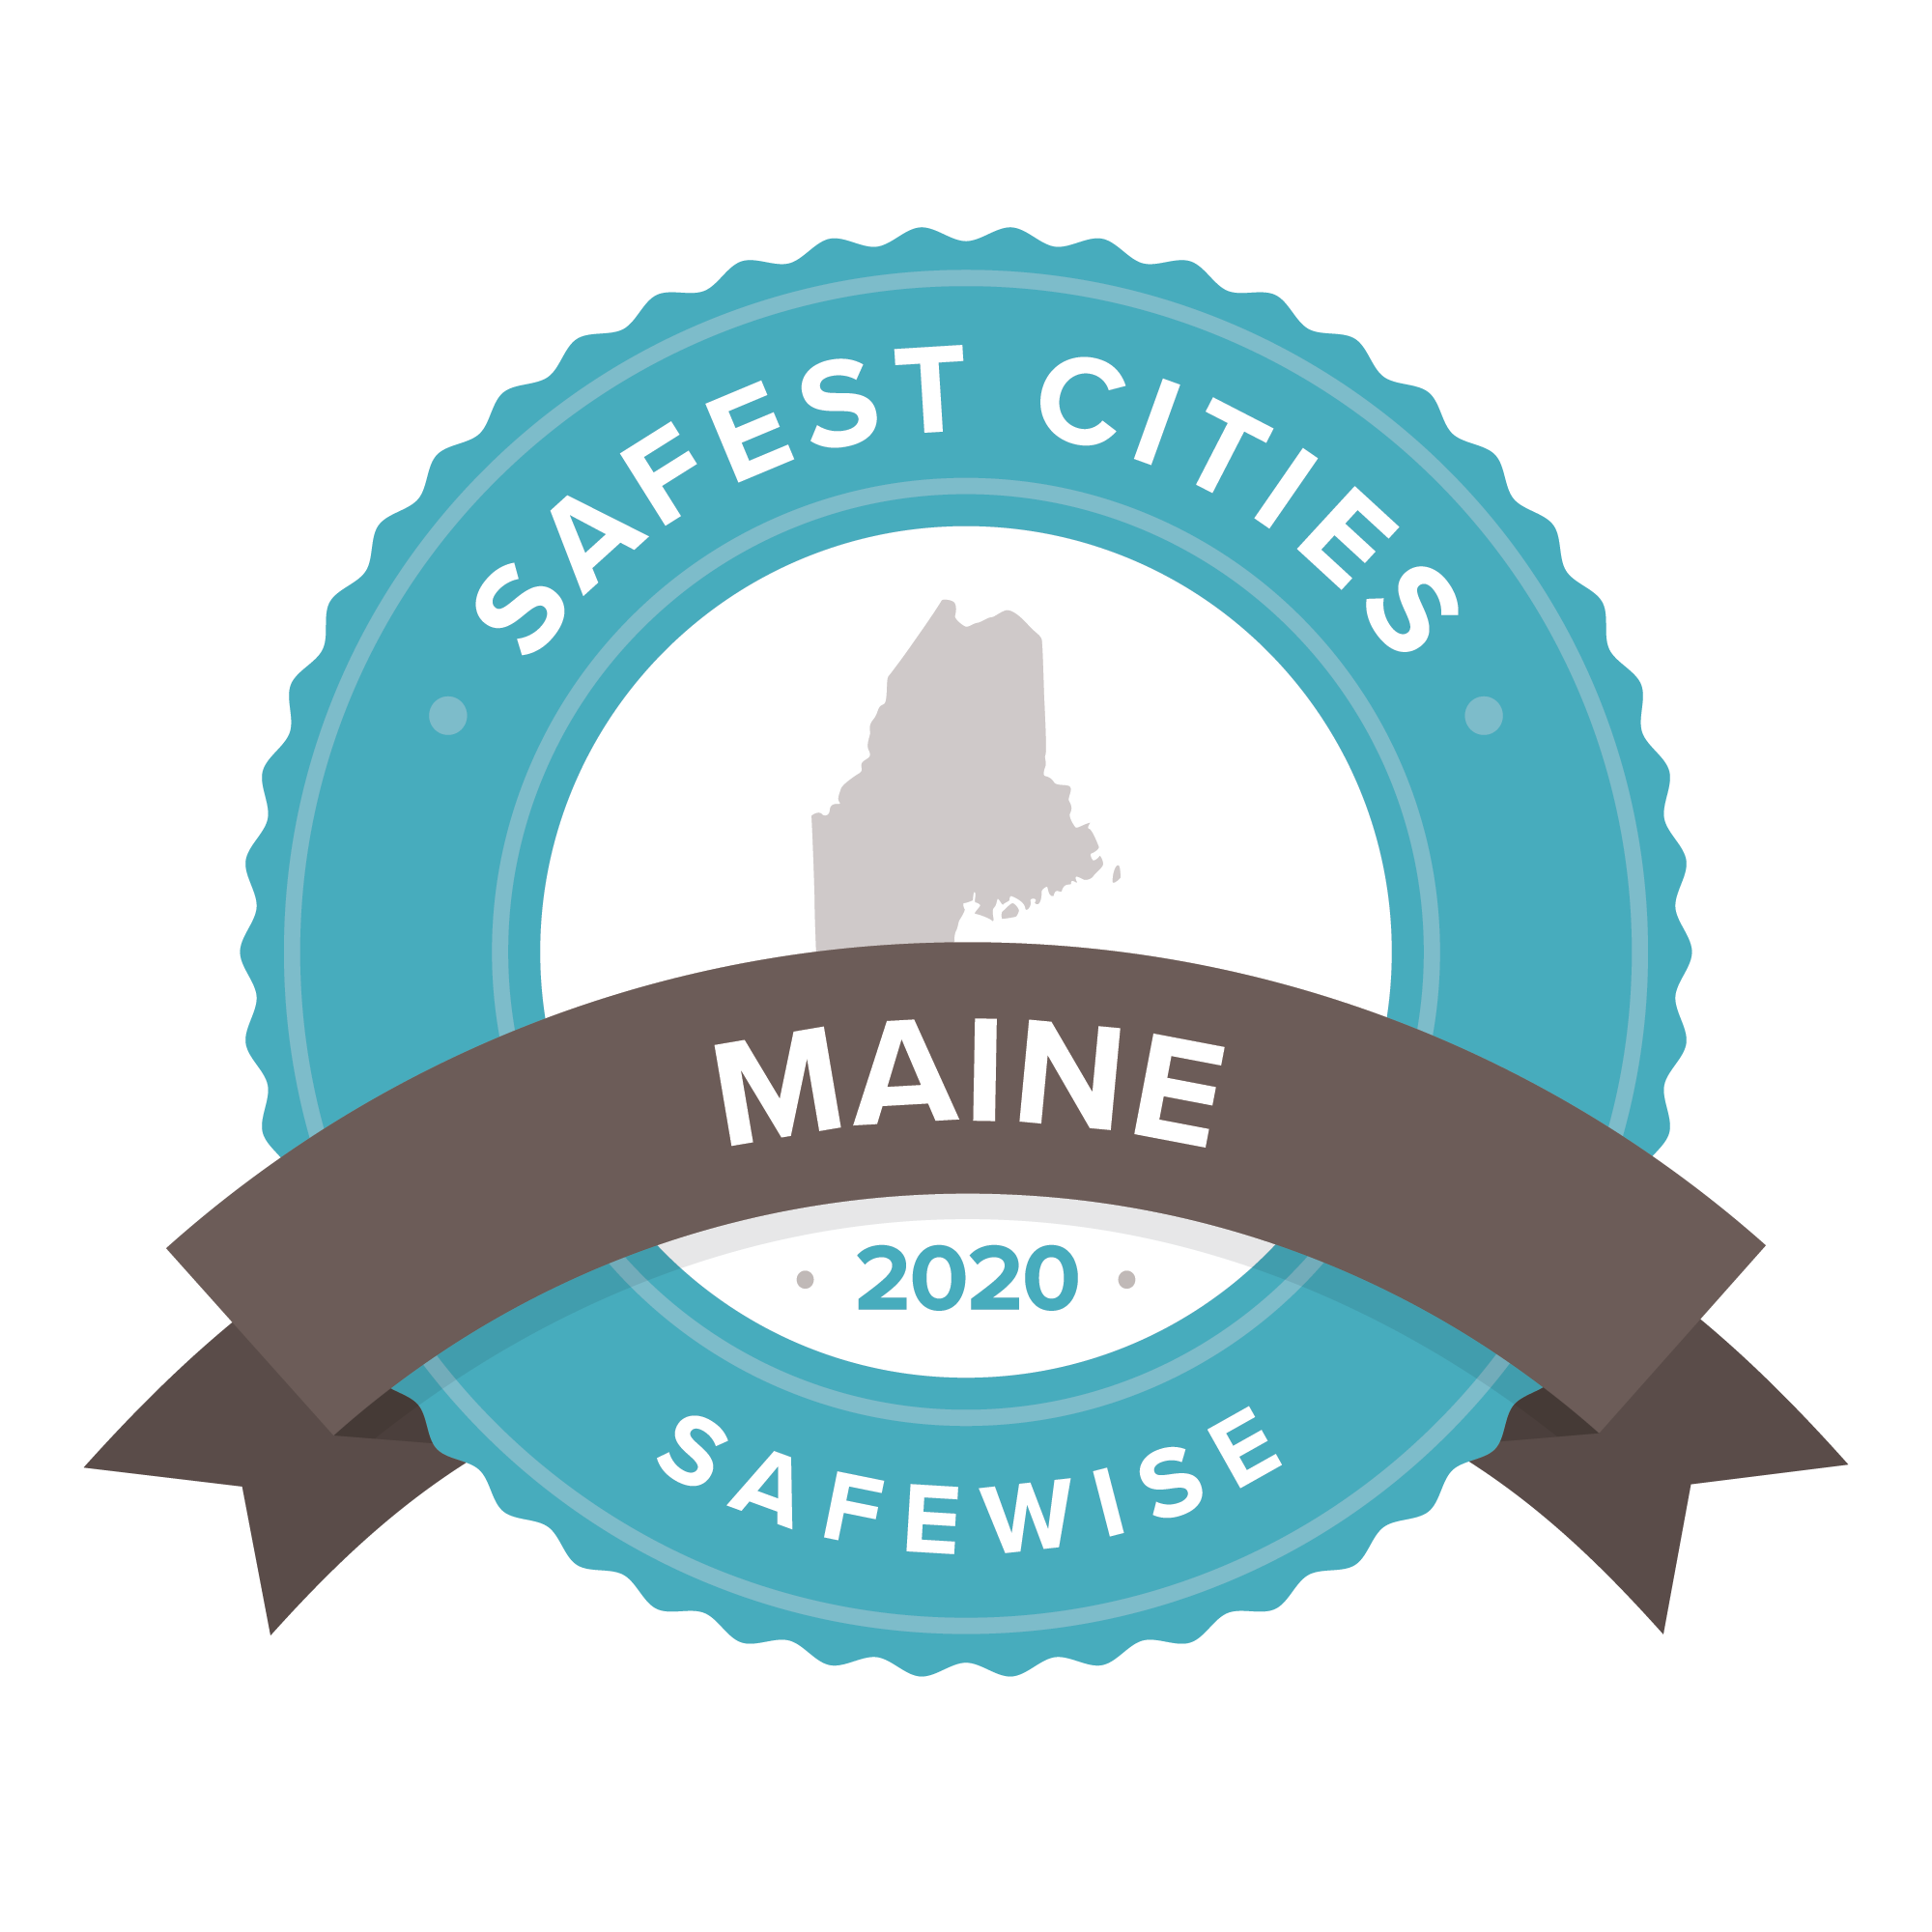 Maine safest cities badge 2020